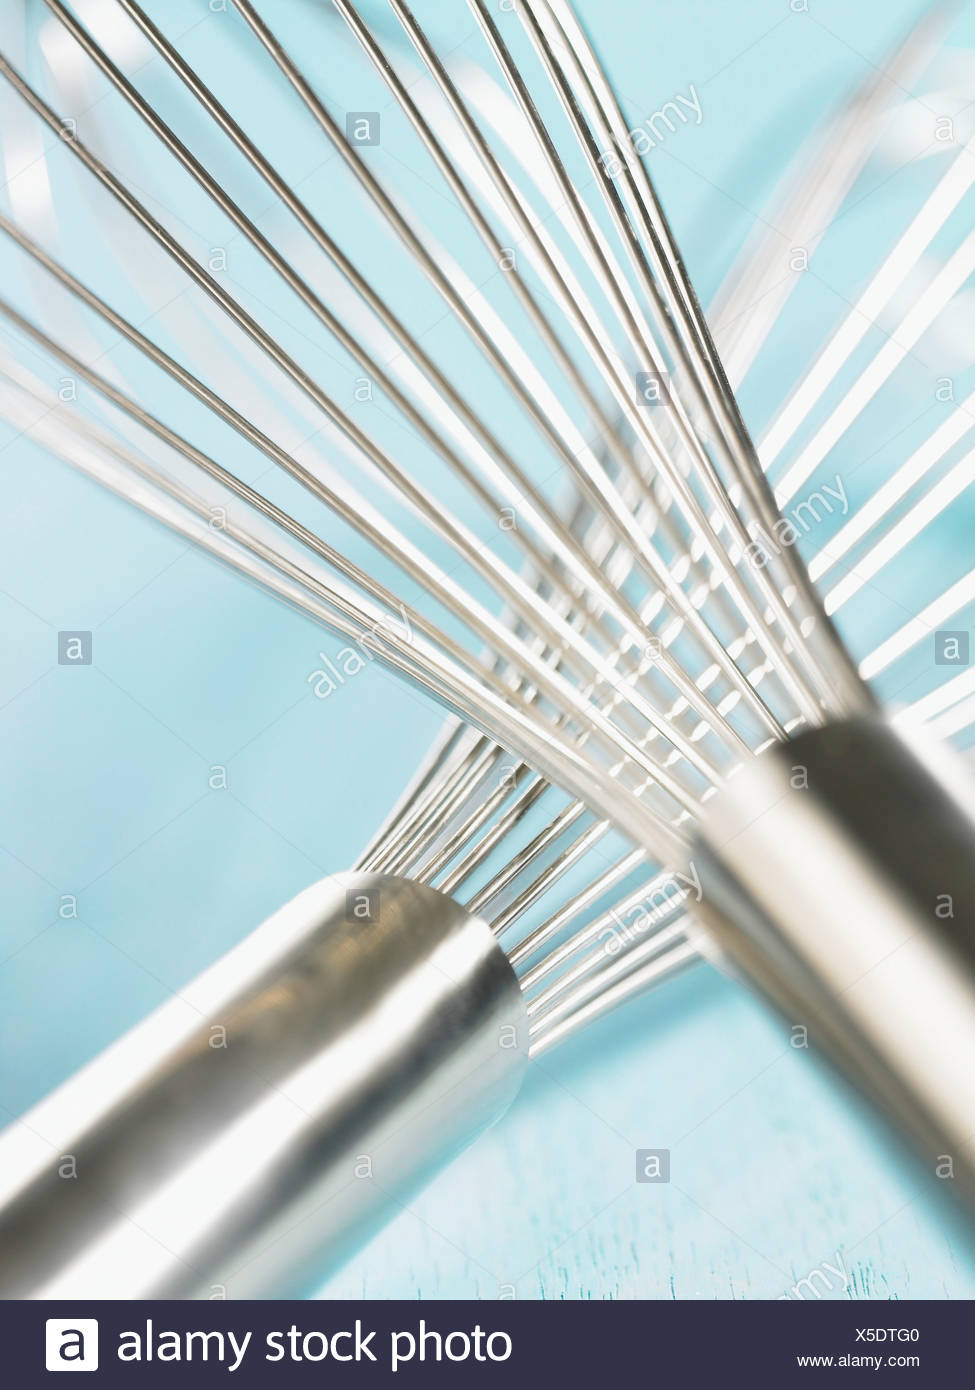 Egg Whisks Stock Photos & Egg Whisks Stock Images - Alamy